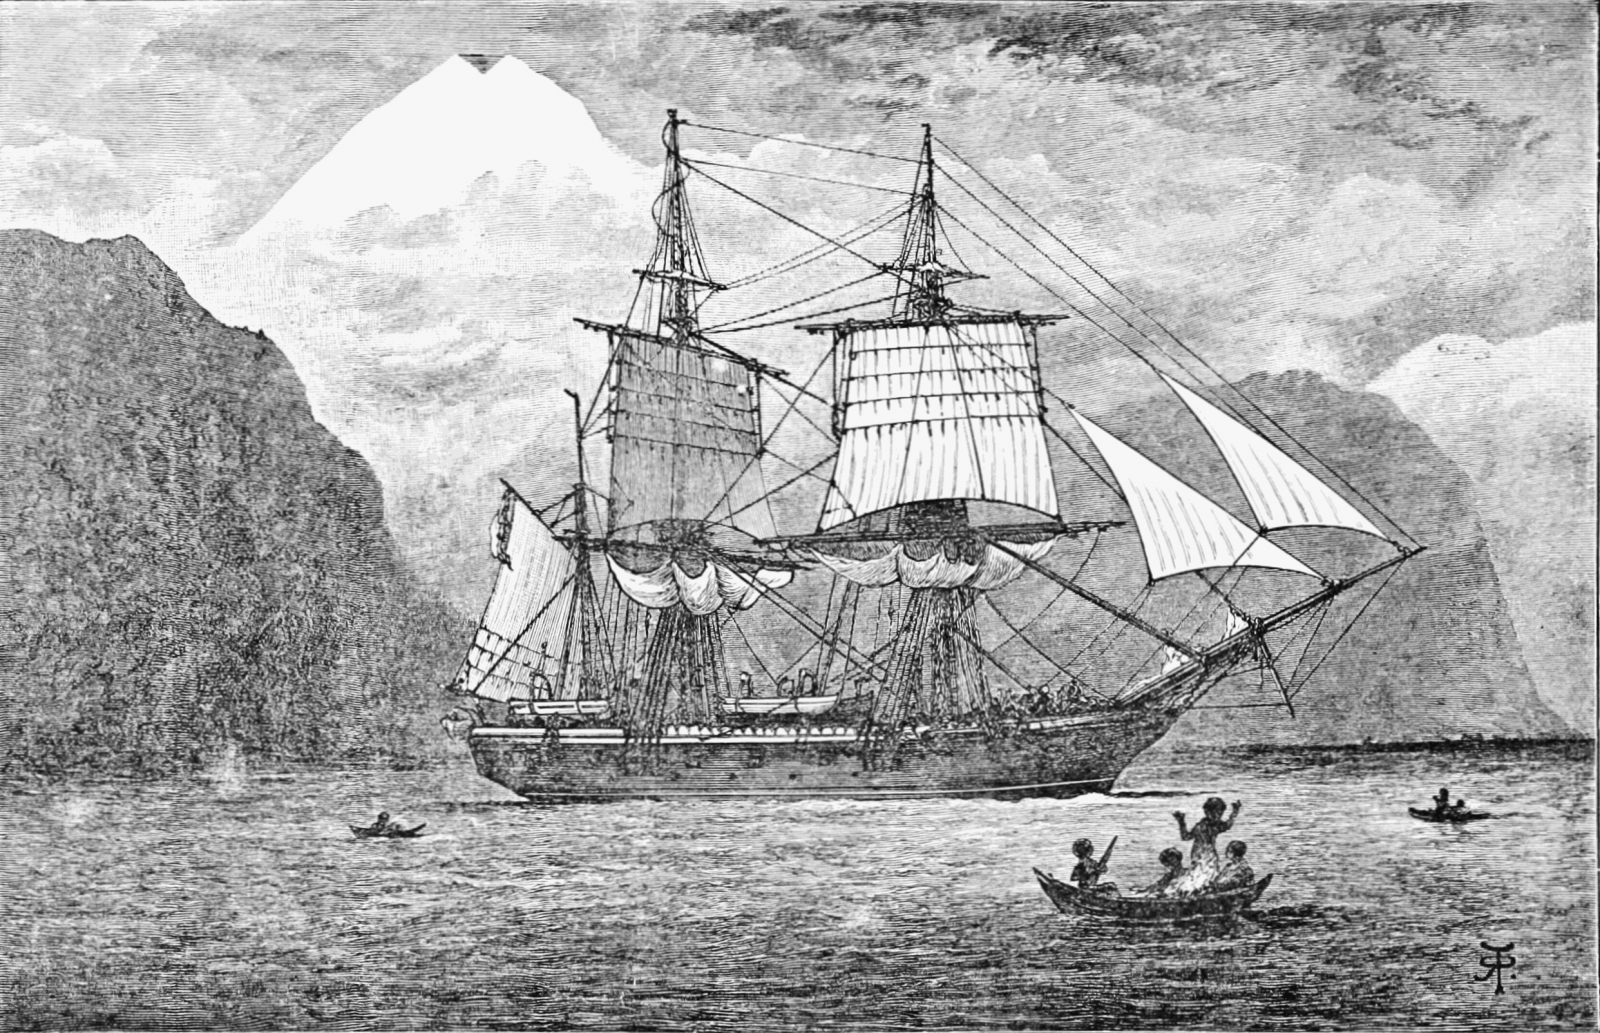 Charles darwins expedition on hms beagle in 1844